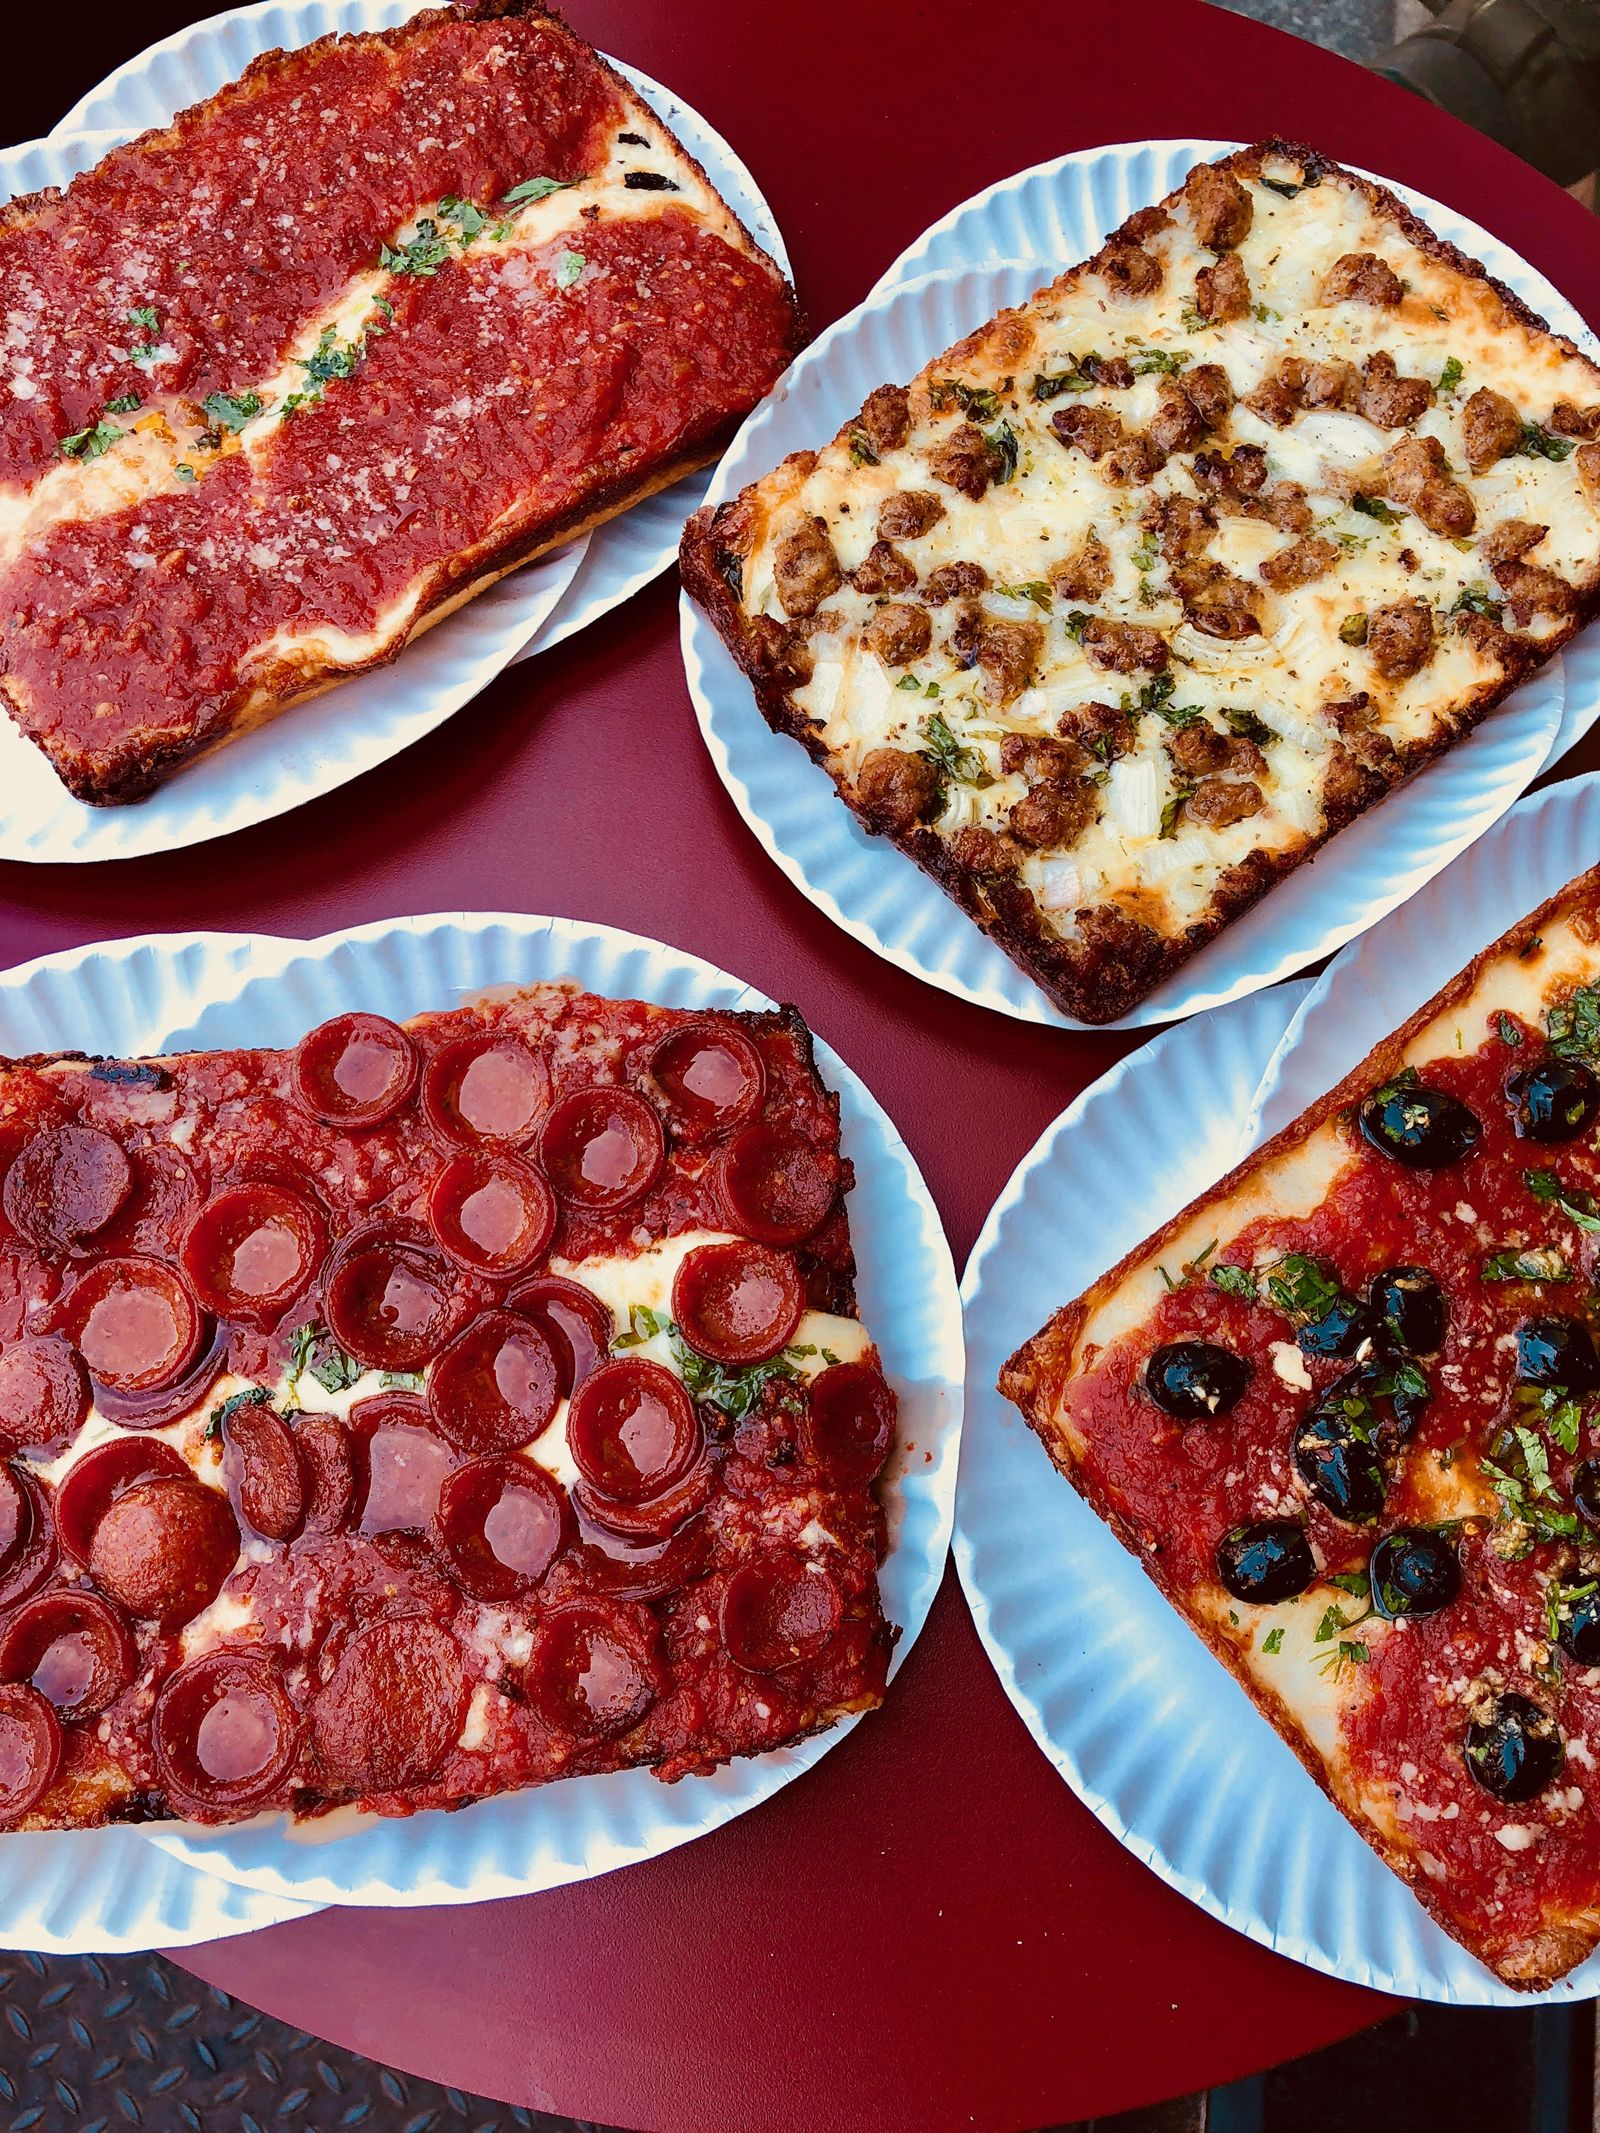 Lions & Tigers & Squares, the Detroit-style pizza shop by the founders of NYC's famed Artichoke Basille's Pizza, will open its second Manhattan outpost in the East Village before year's end.